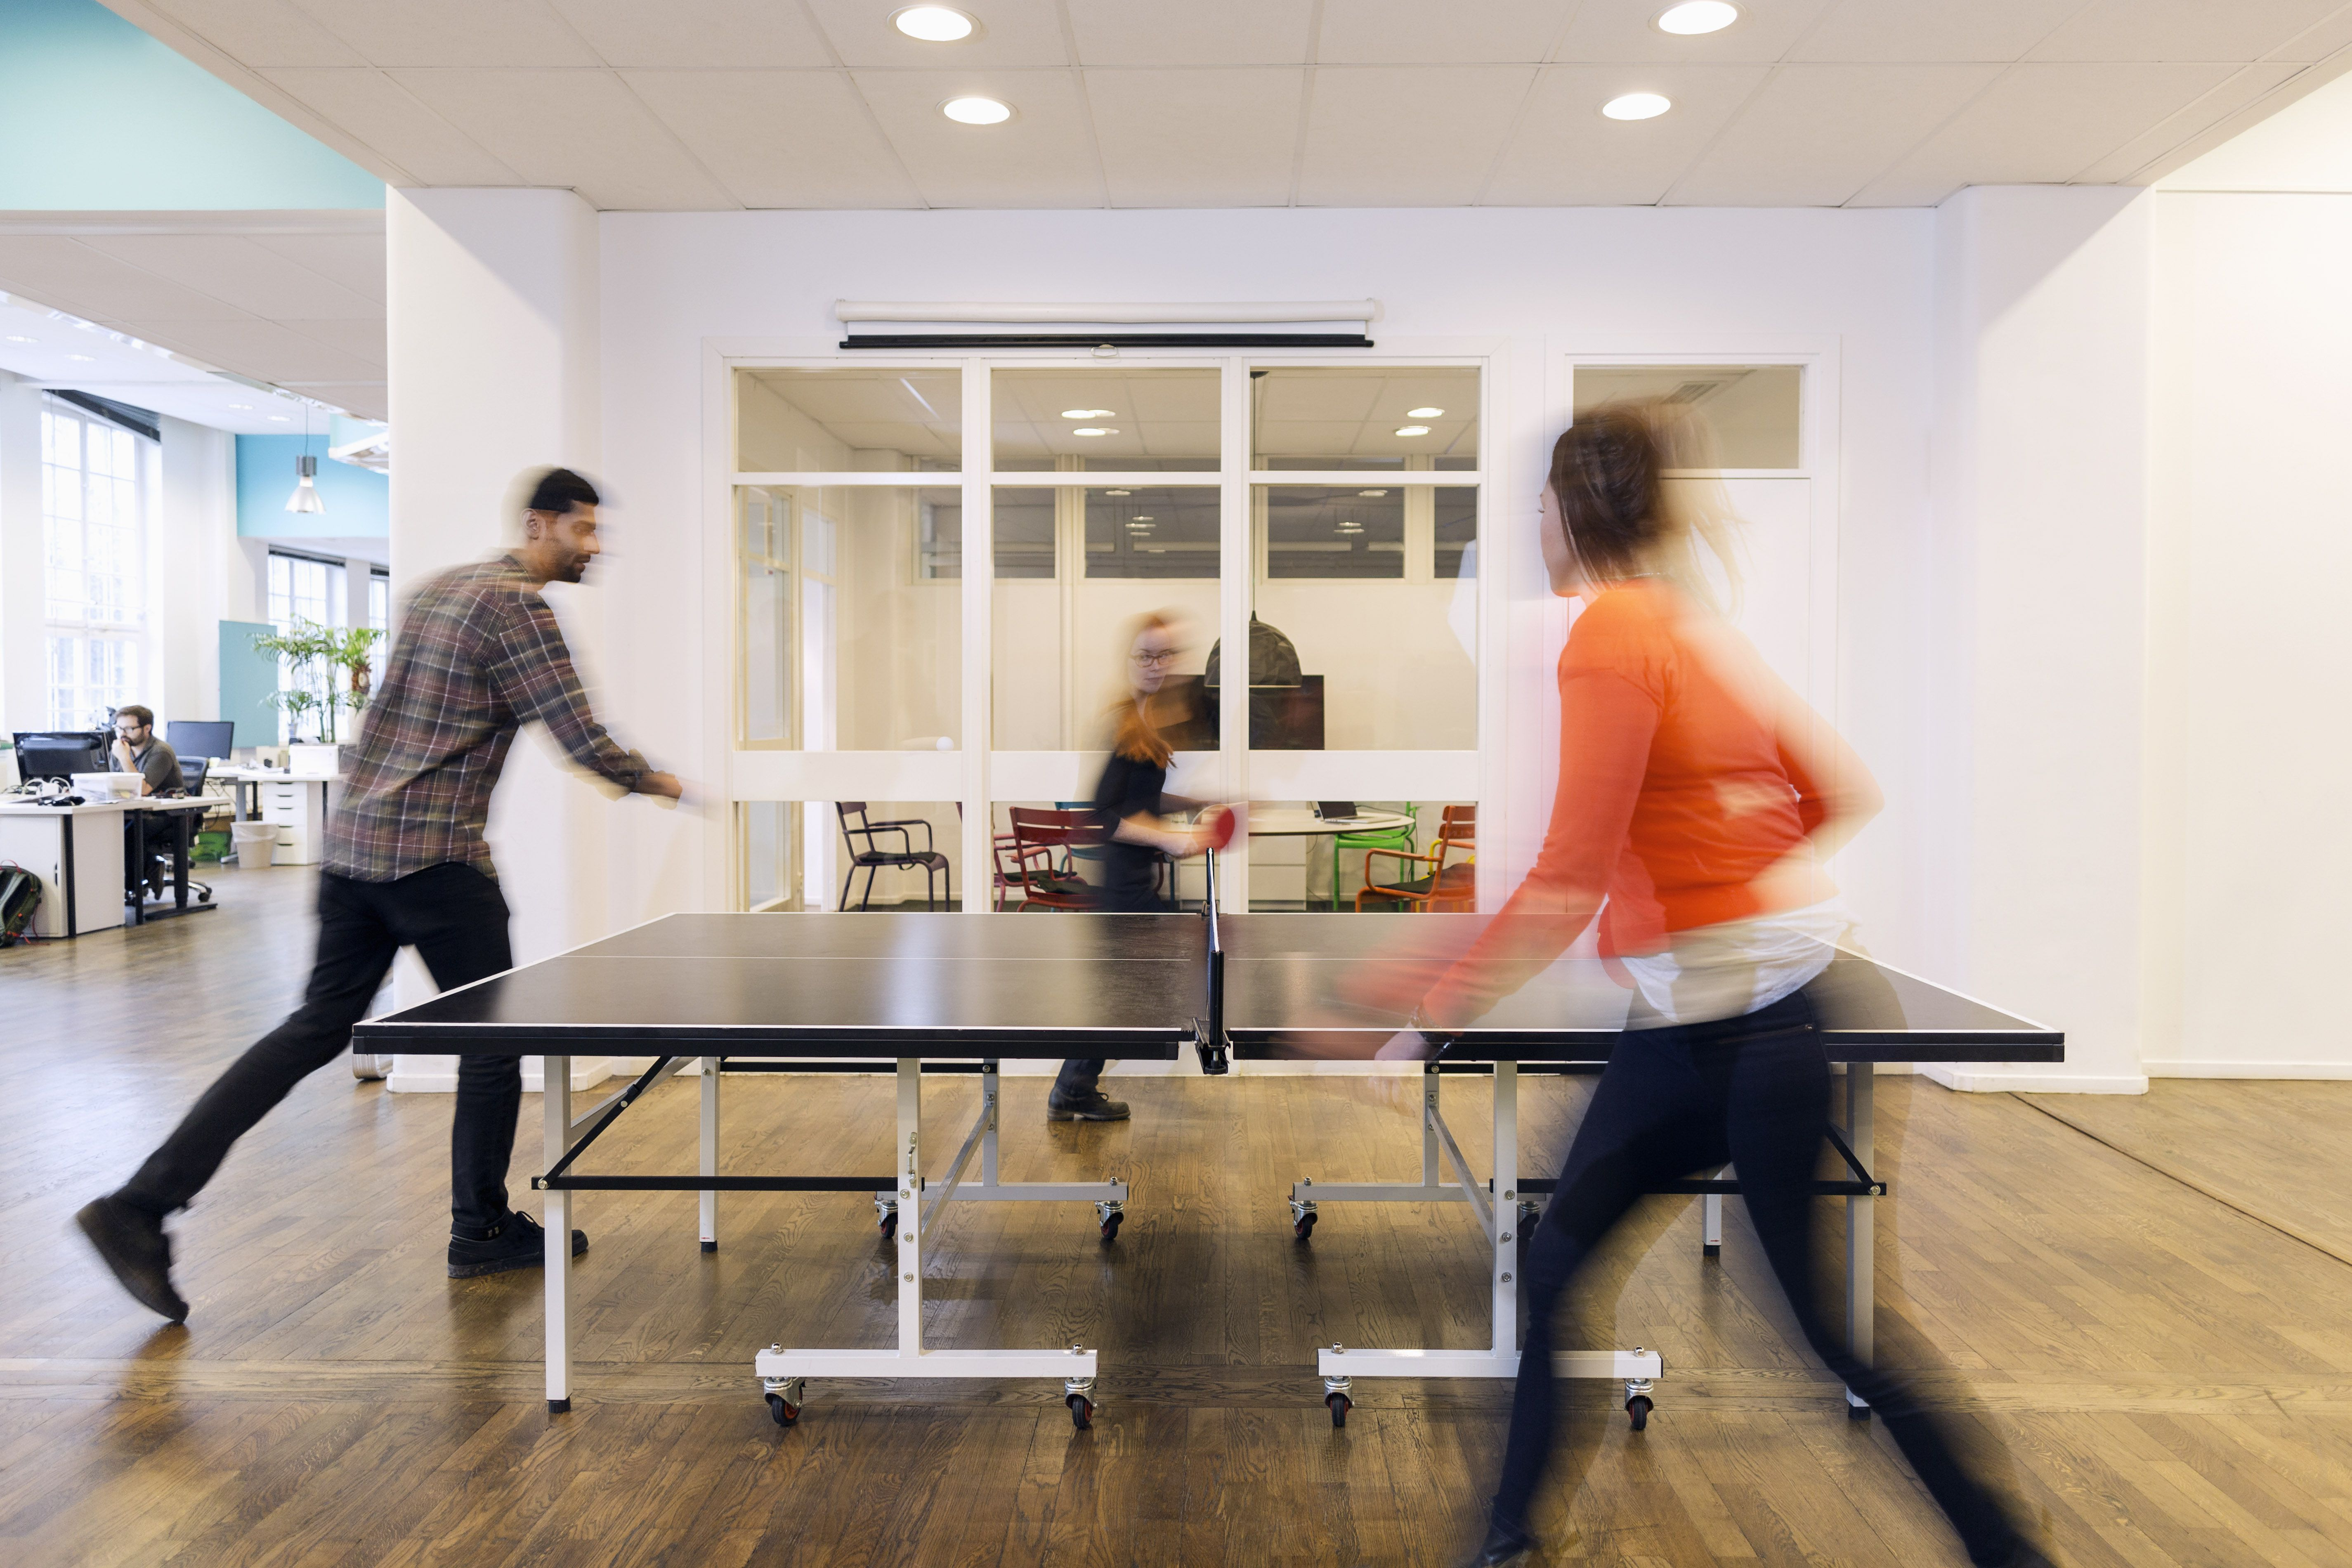 Table Tennis Glossary What is a Fault